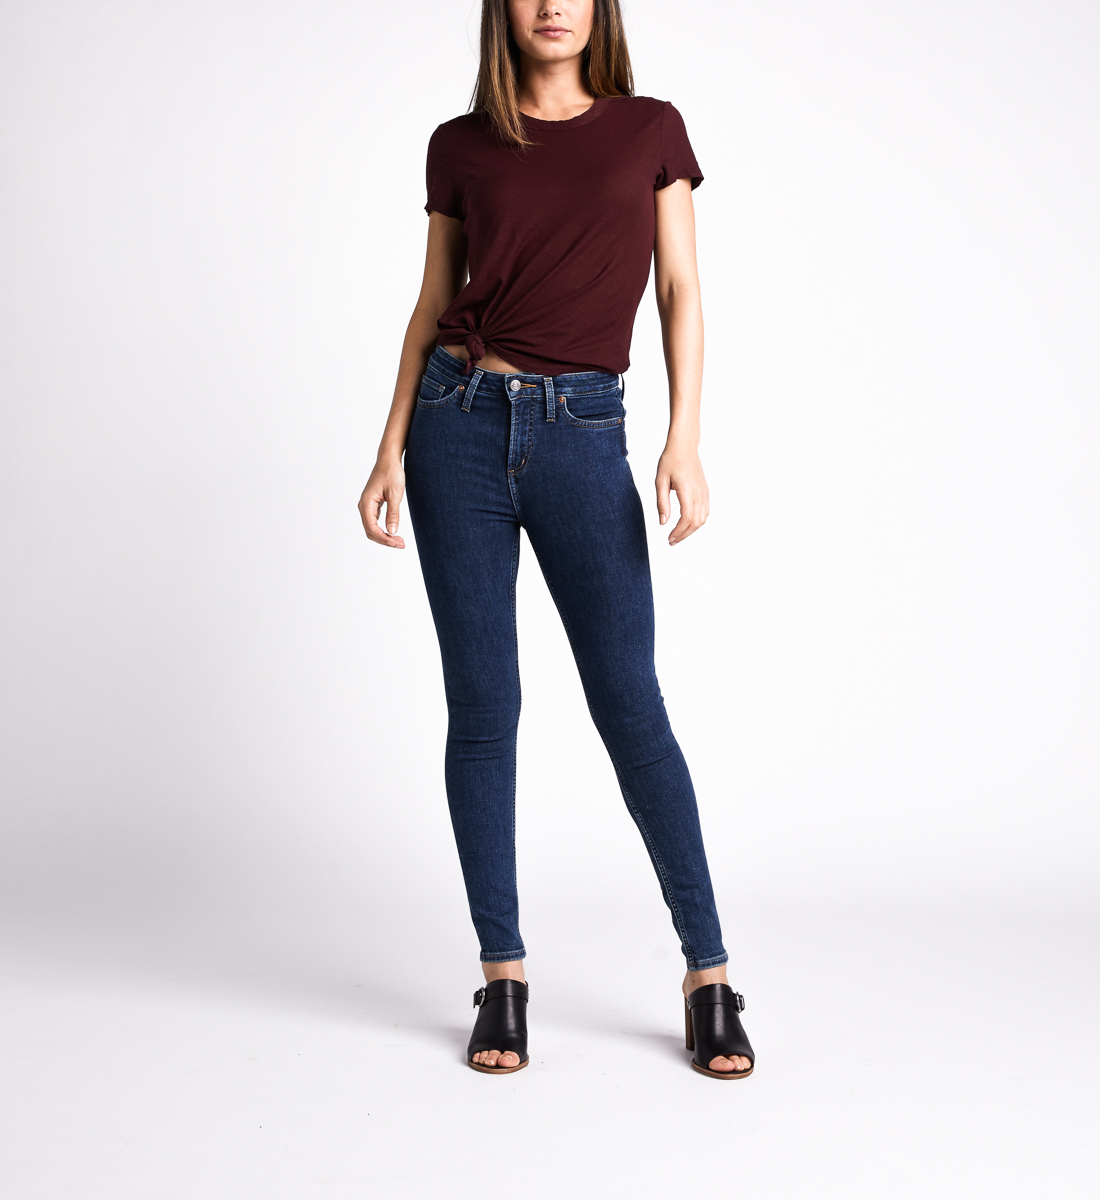 Silver Jeans High Note High Rise Skinny Leg Jeans